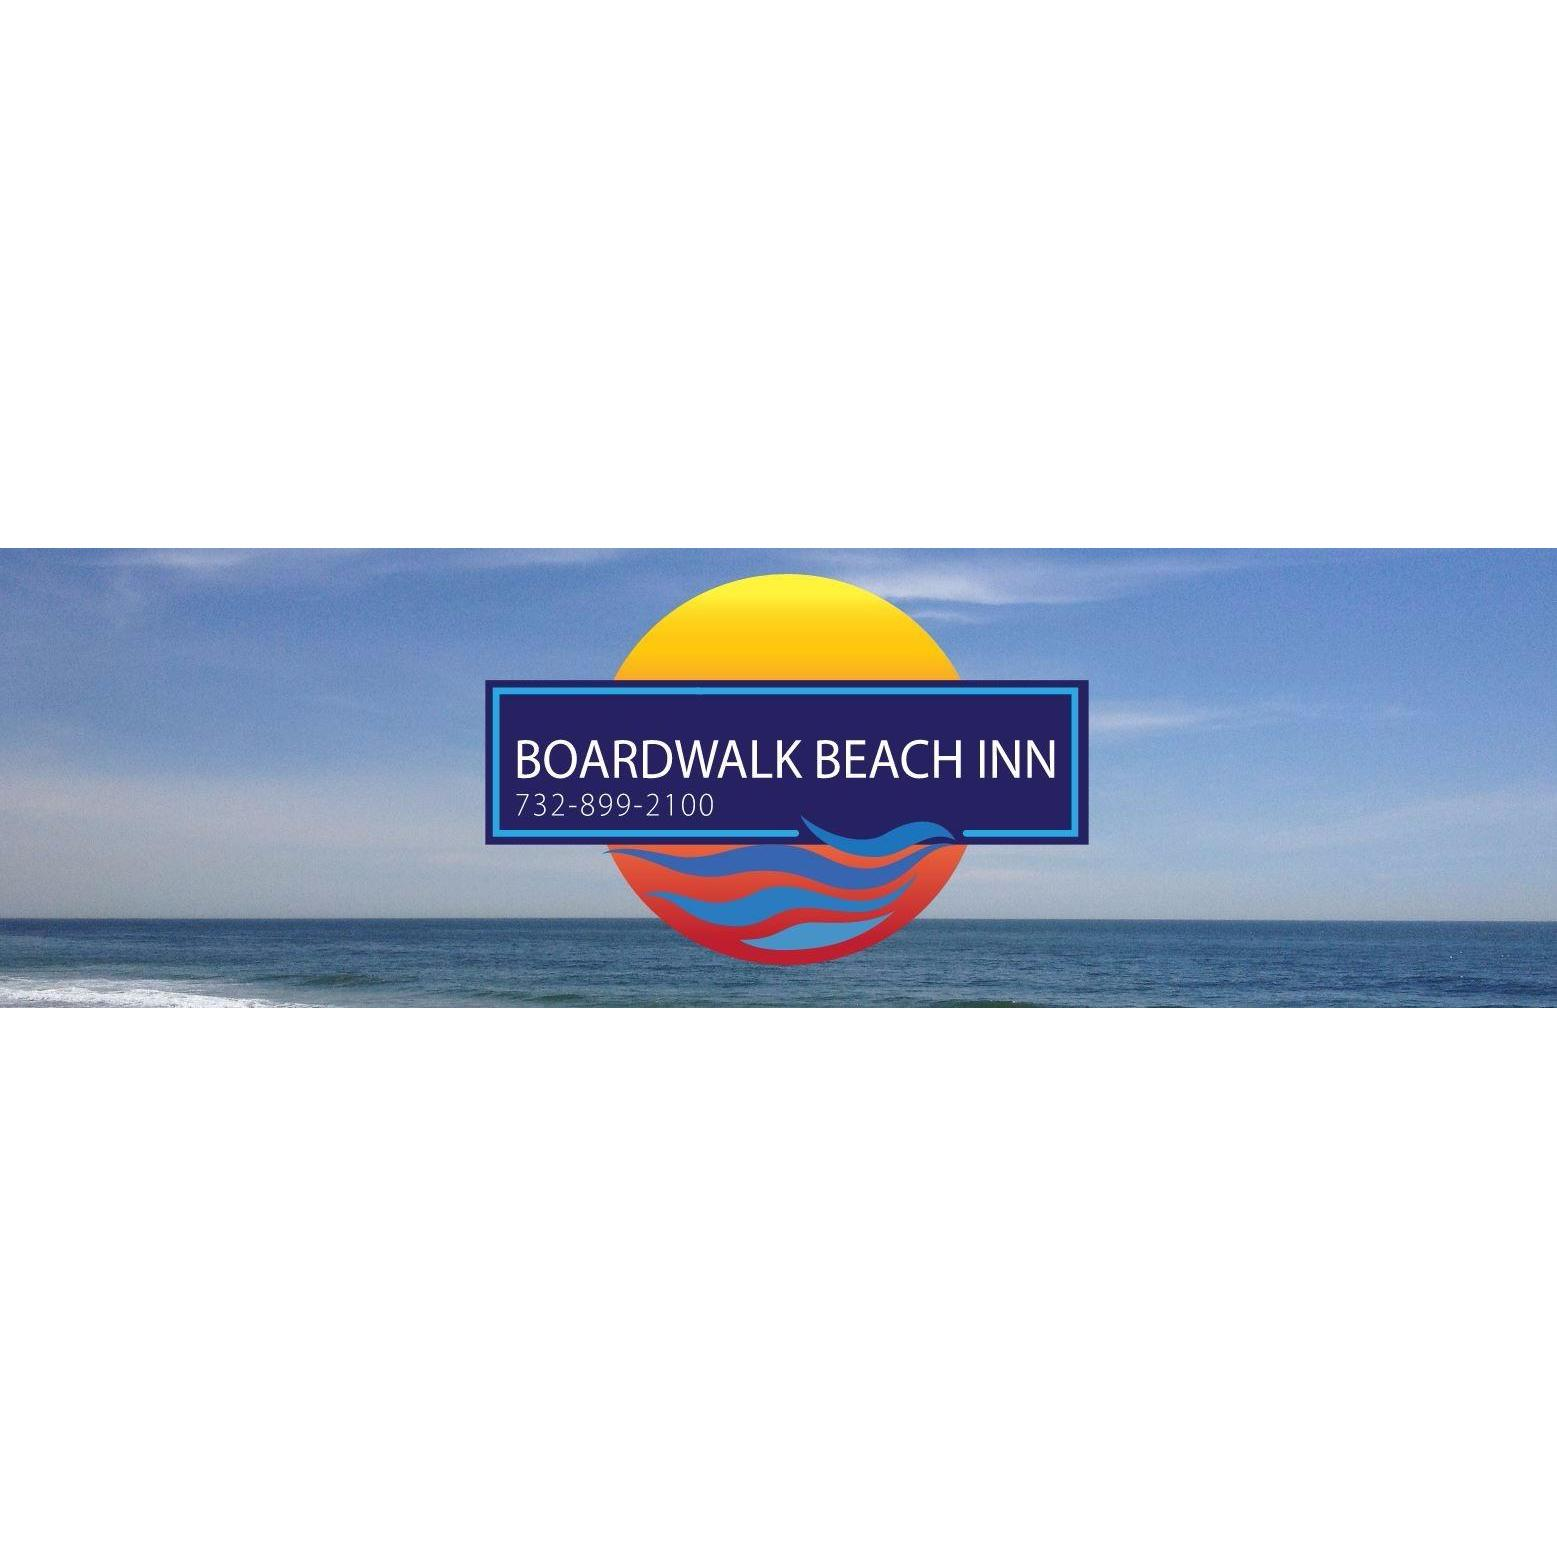 Boardwalk Beach Inn